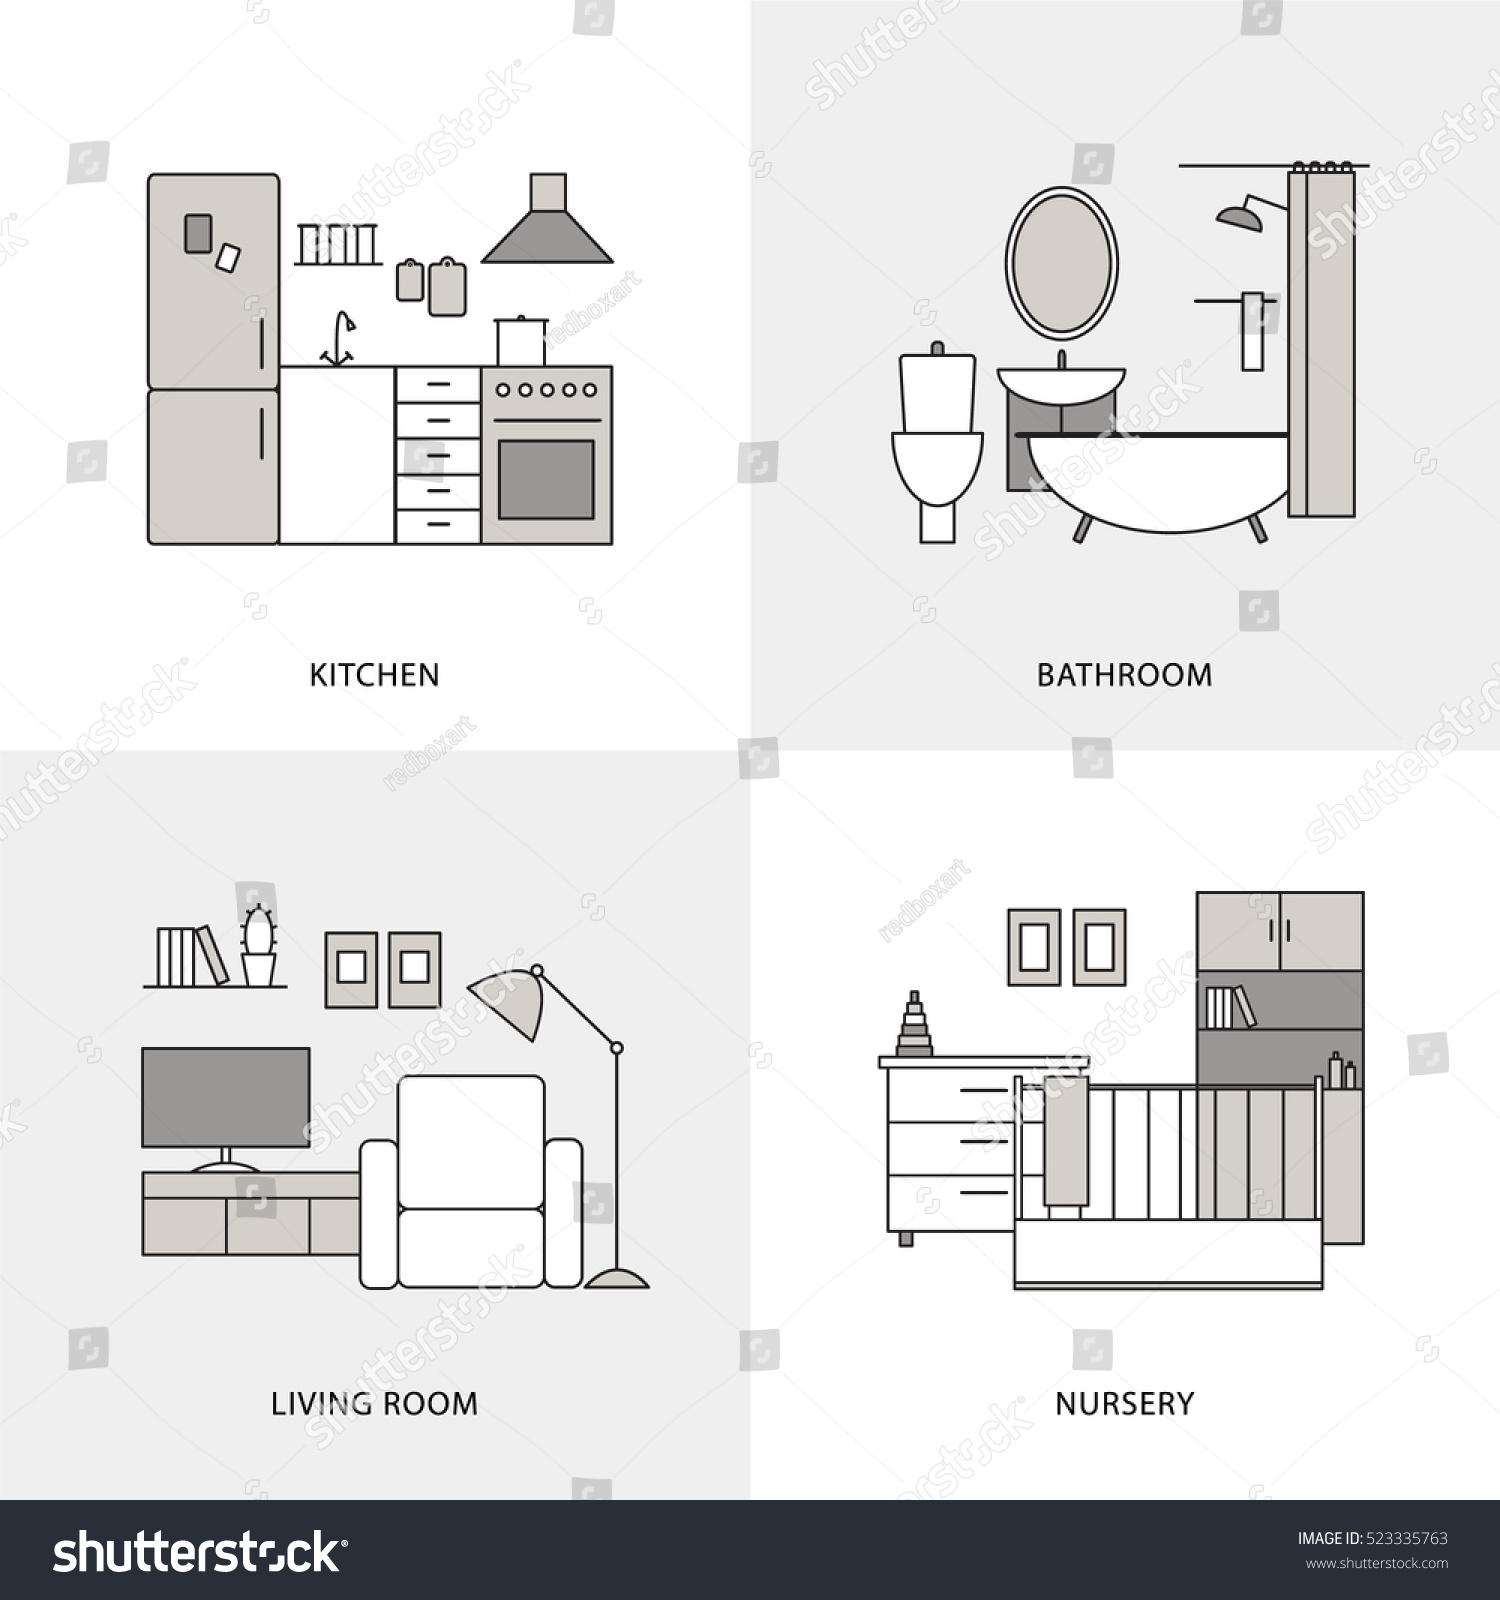 Flat Line Home Interior Design Icons. Kitchen, Bathroom, Living Room And  Nursery Vector